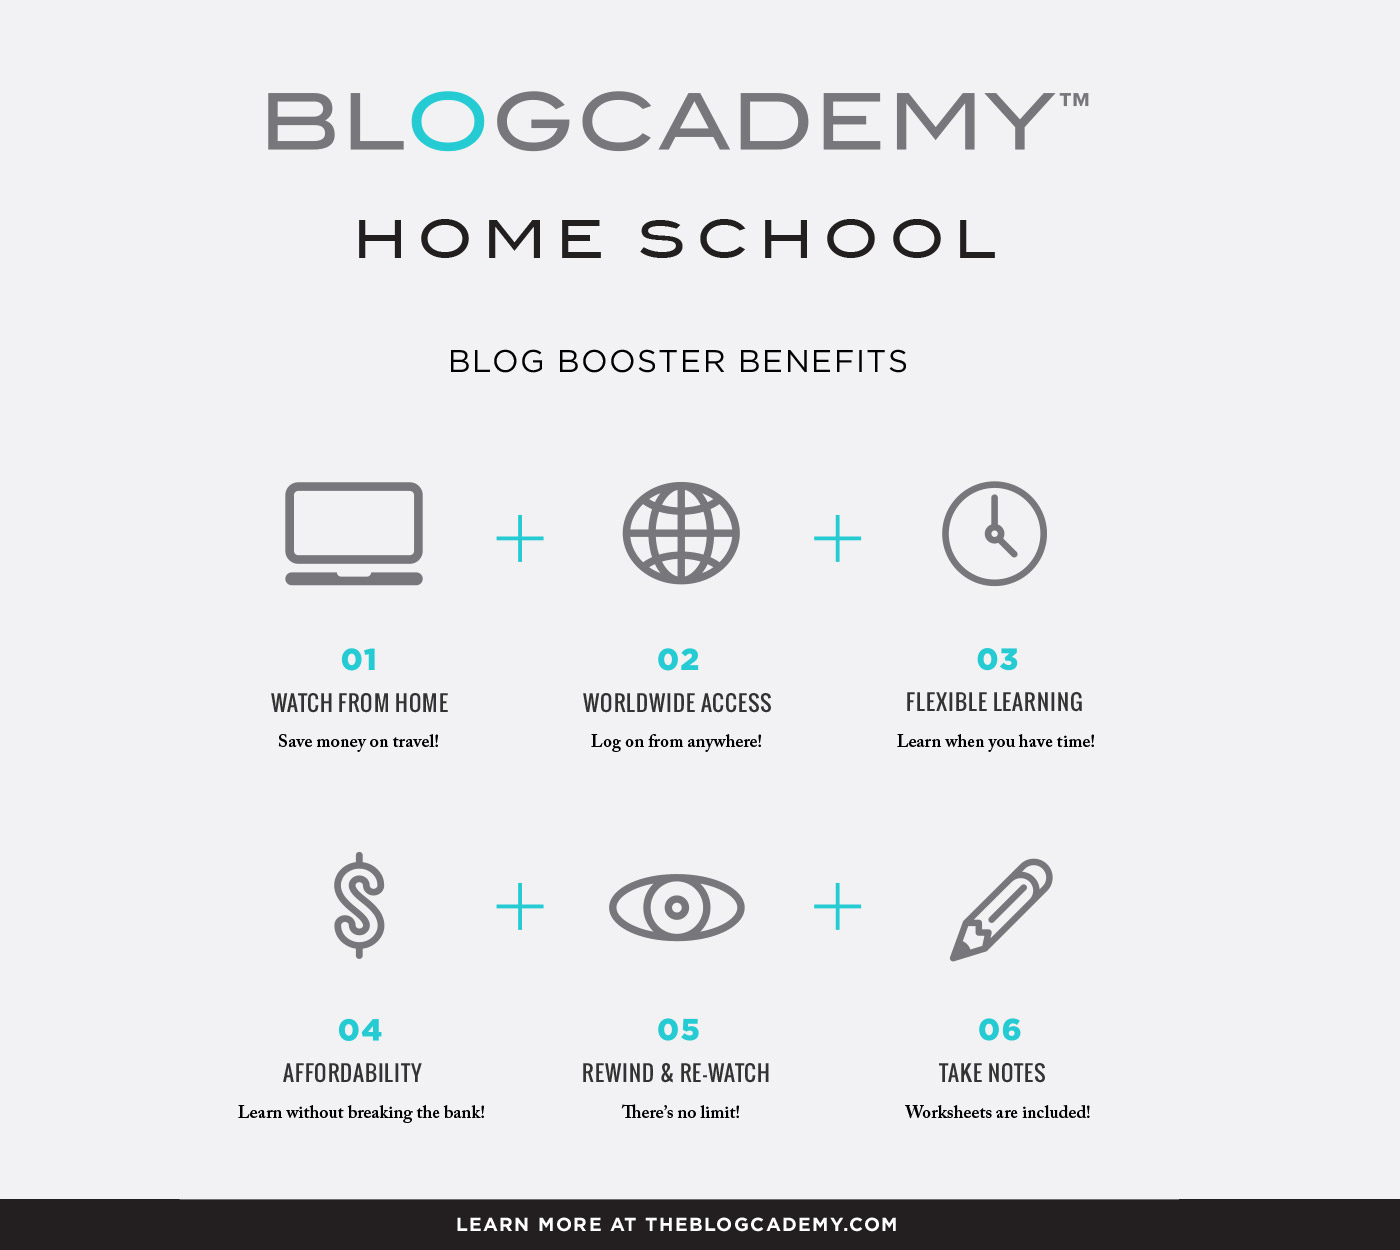 blogcademy_blog_homeschool_1